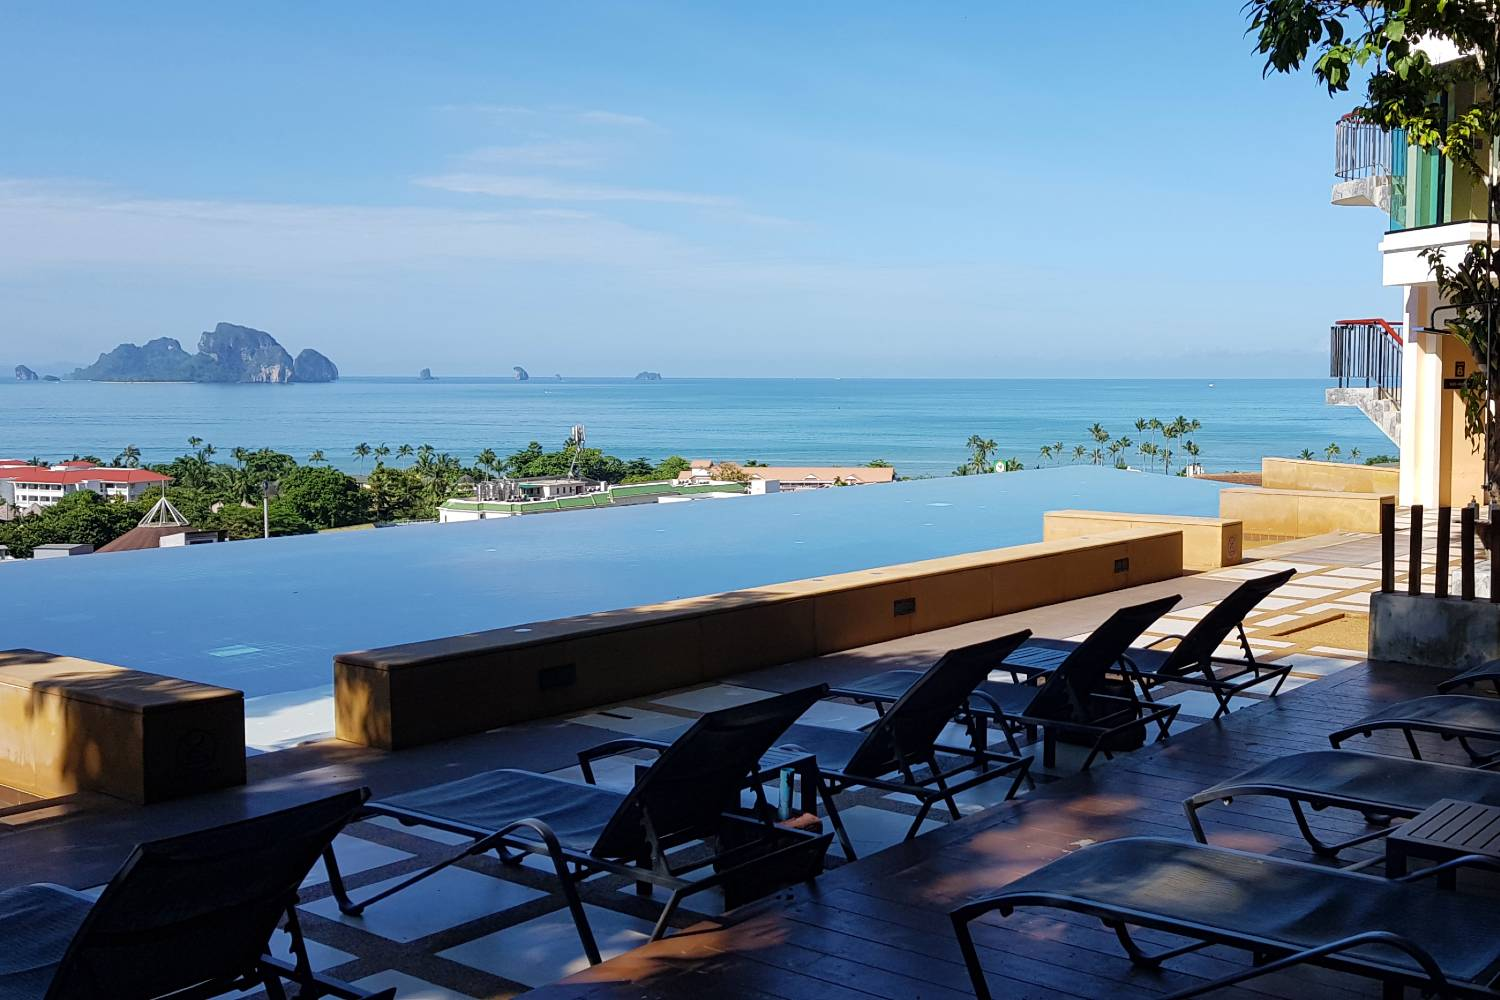 The infinity pool with sunbeds at the Avani Ao Nang Cliff Krabi Resort